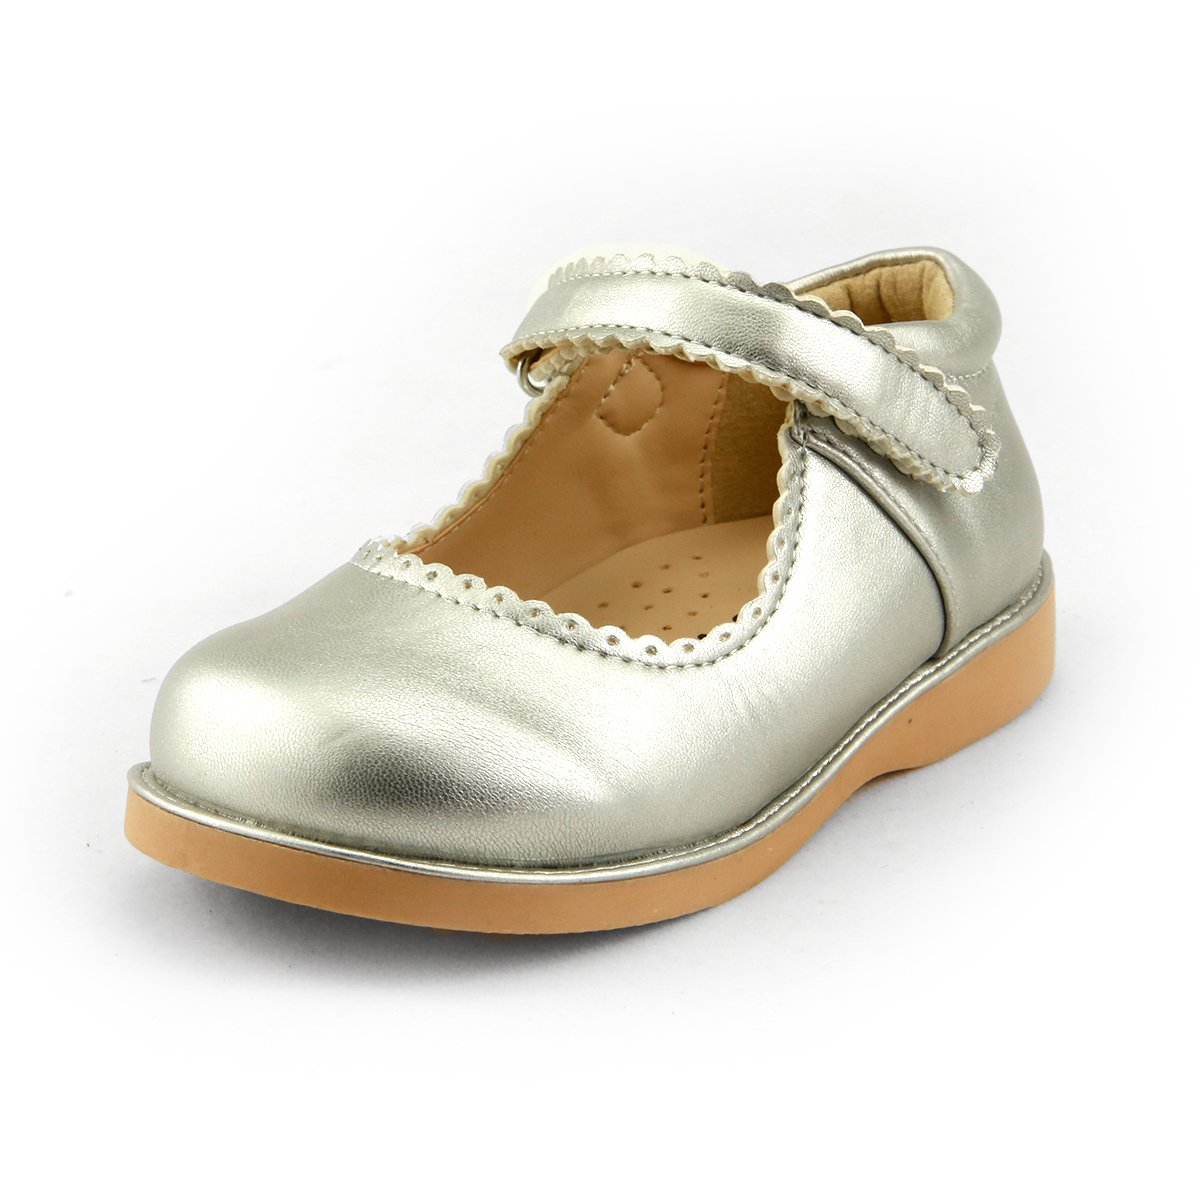 Girl's School Dress Classic Shoes Touch Close Mary Jane 3 Colors Toddler Size (7, silver)